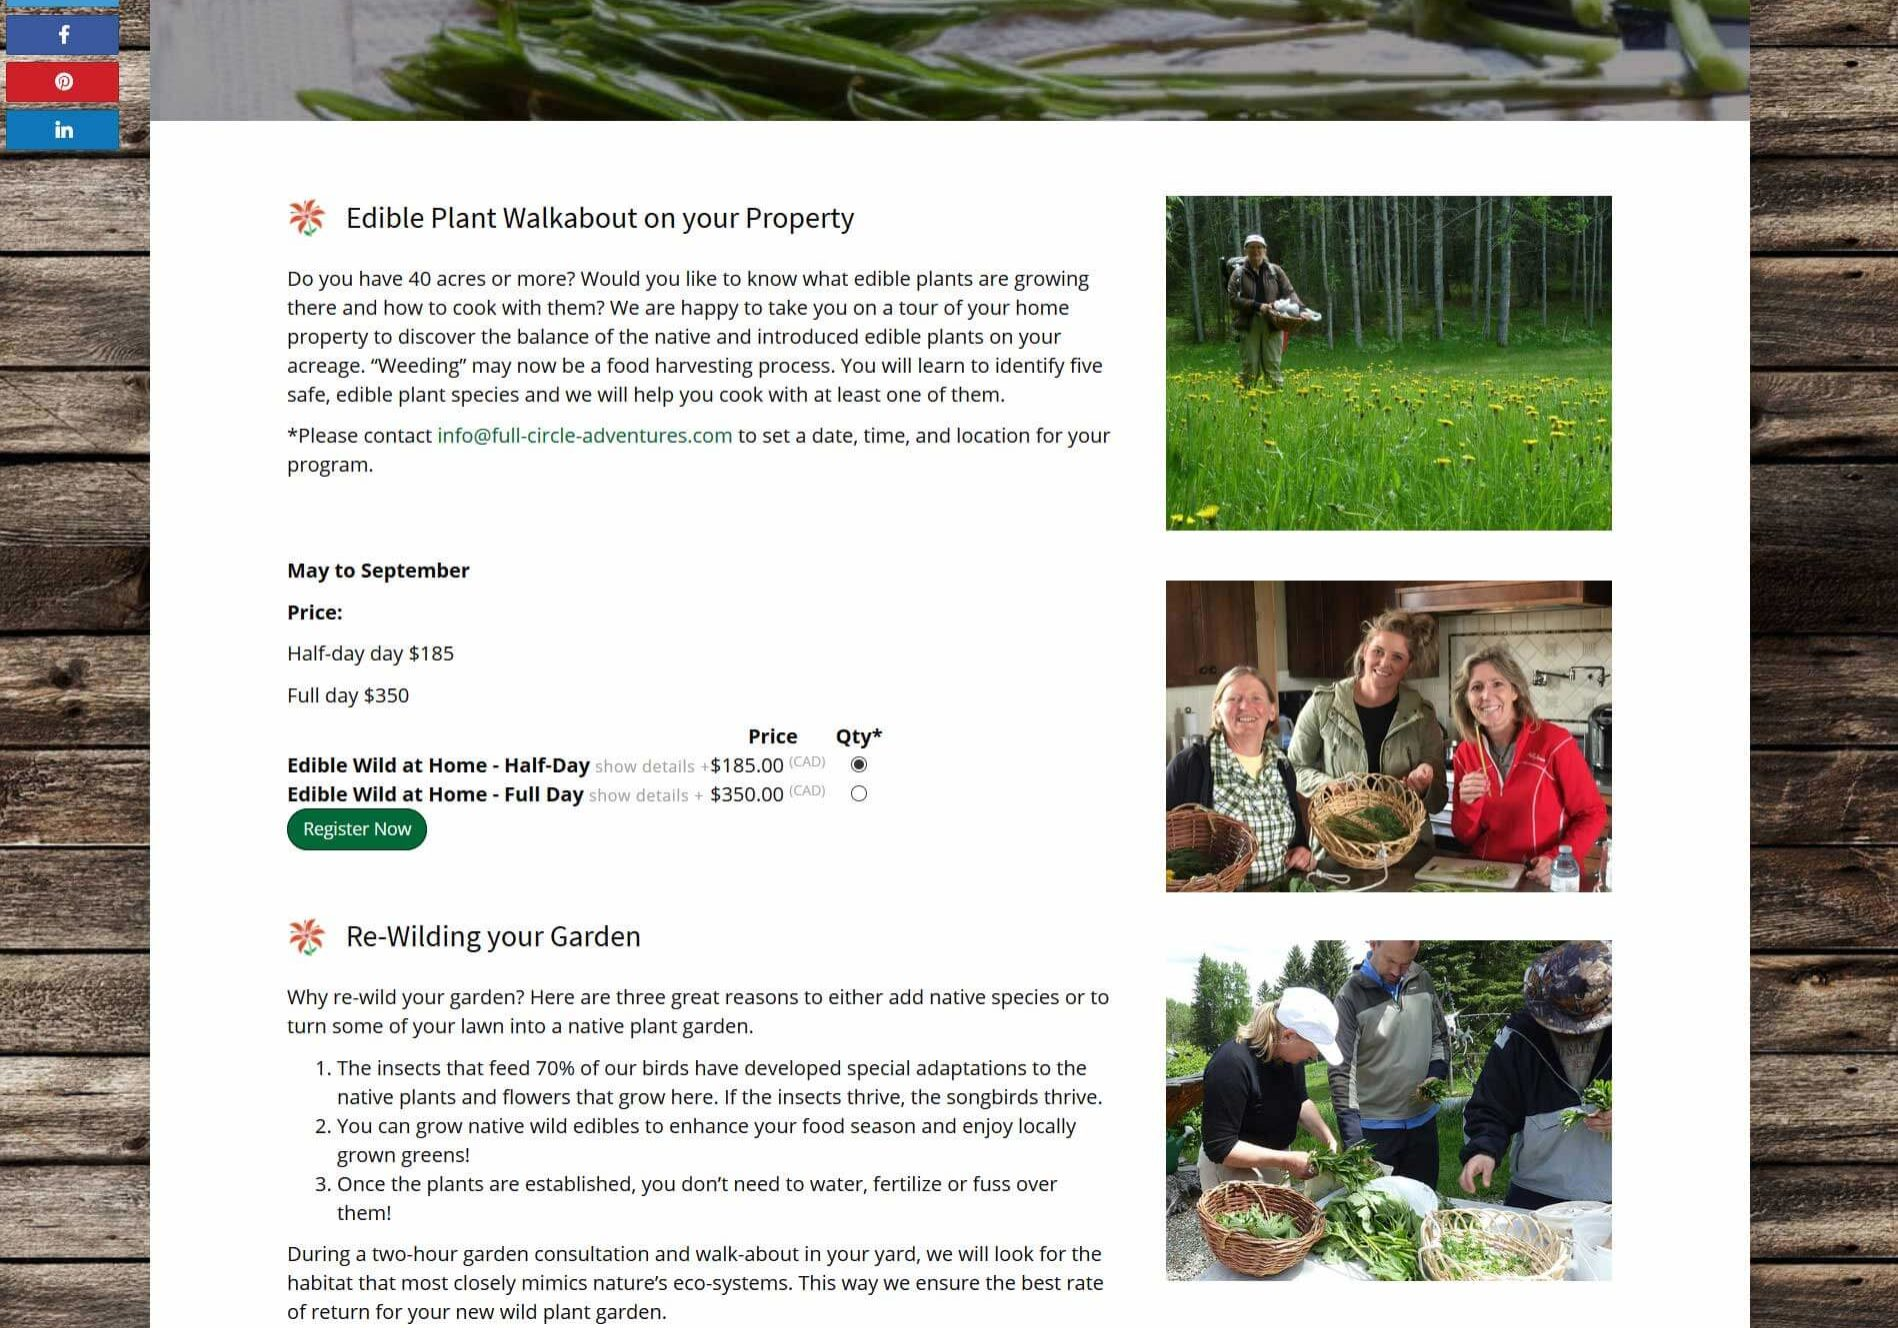 Full Circle Adventures Edible Wild at Home Page Screenshot